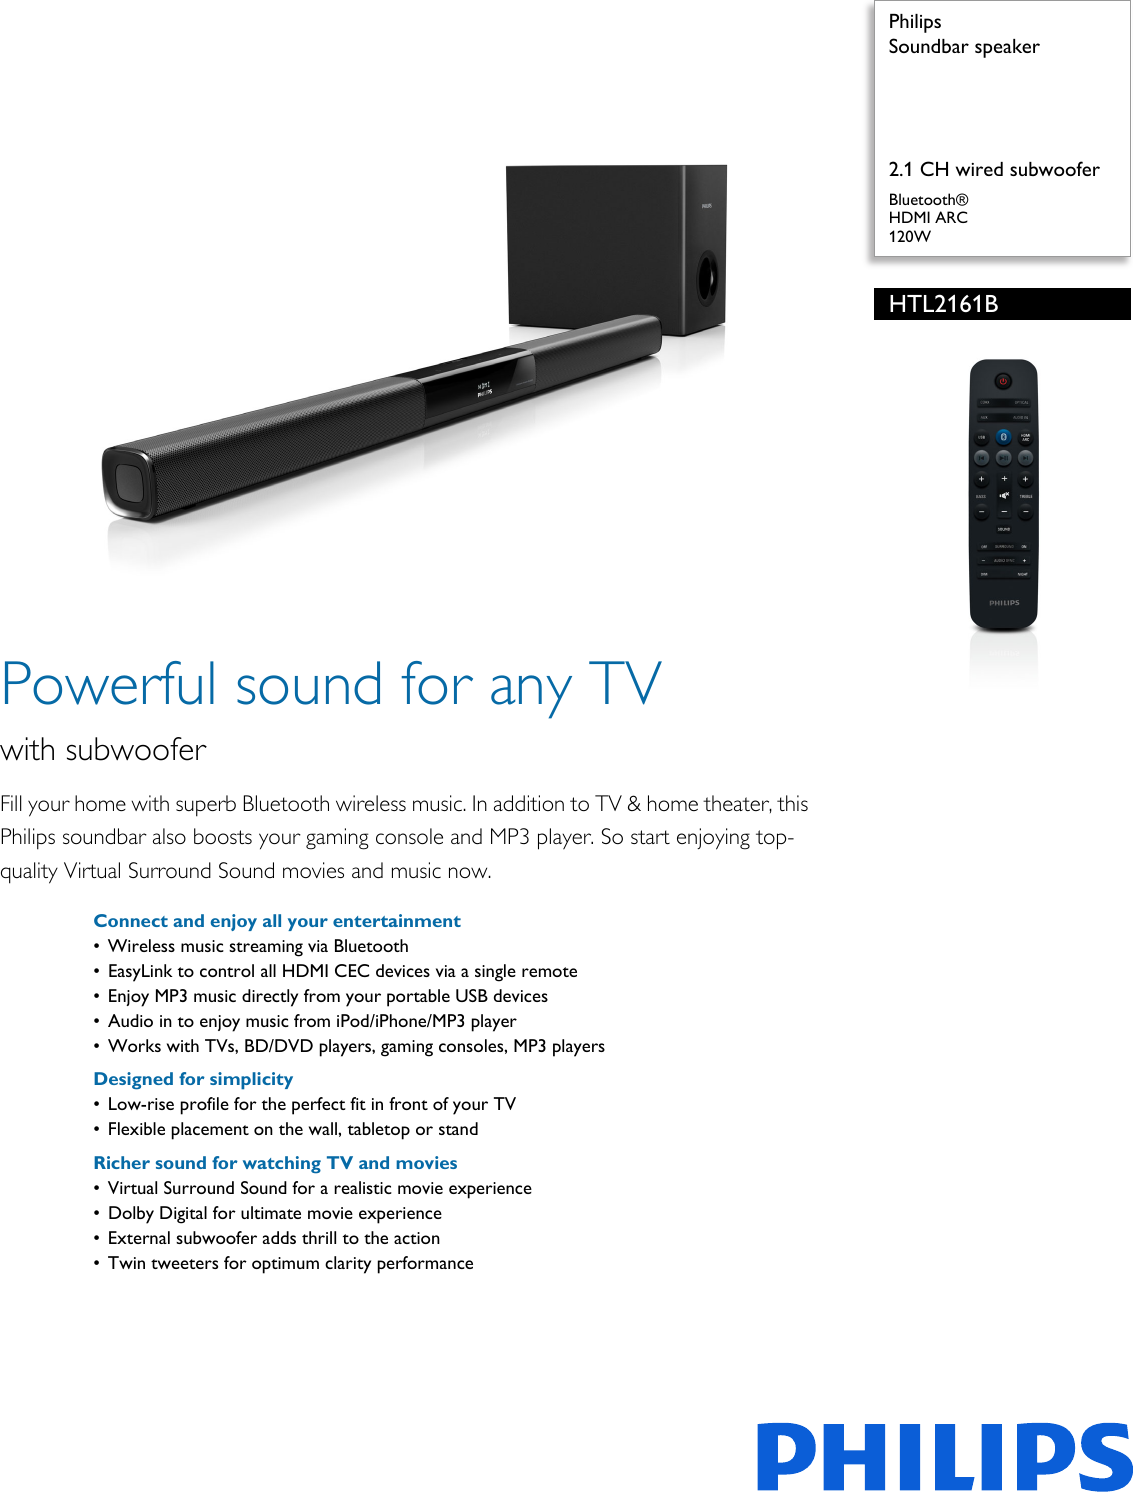 philips soundbar manual browse manual guides u2022 rh trufflefries co Philips Soundbar with Subwoofer Philips Soundbar HTL 2101